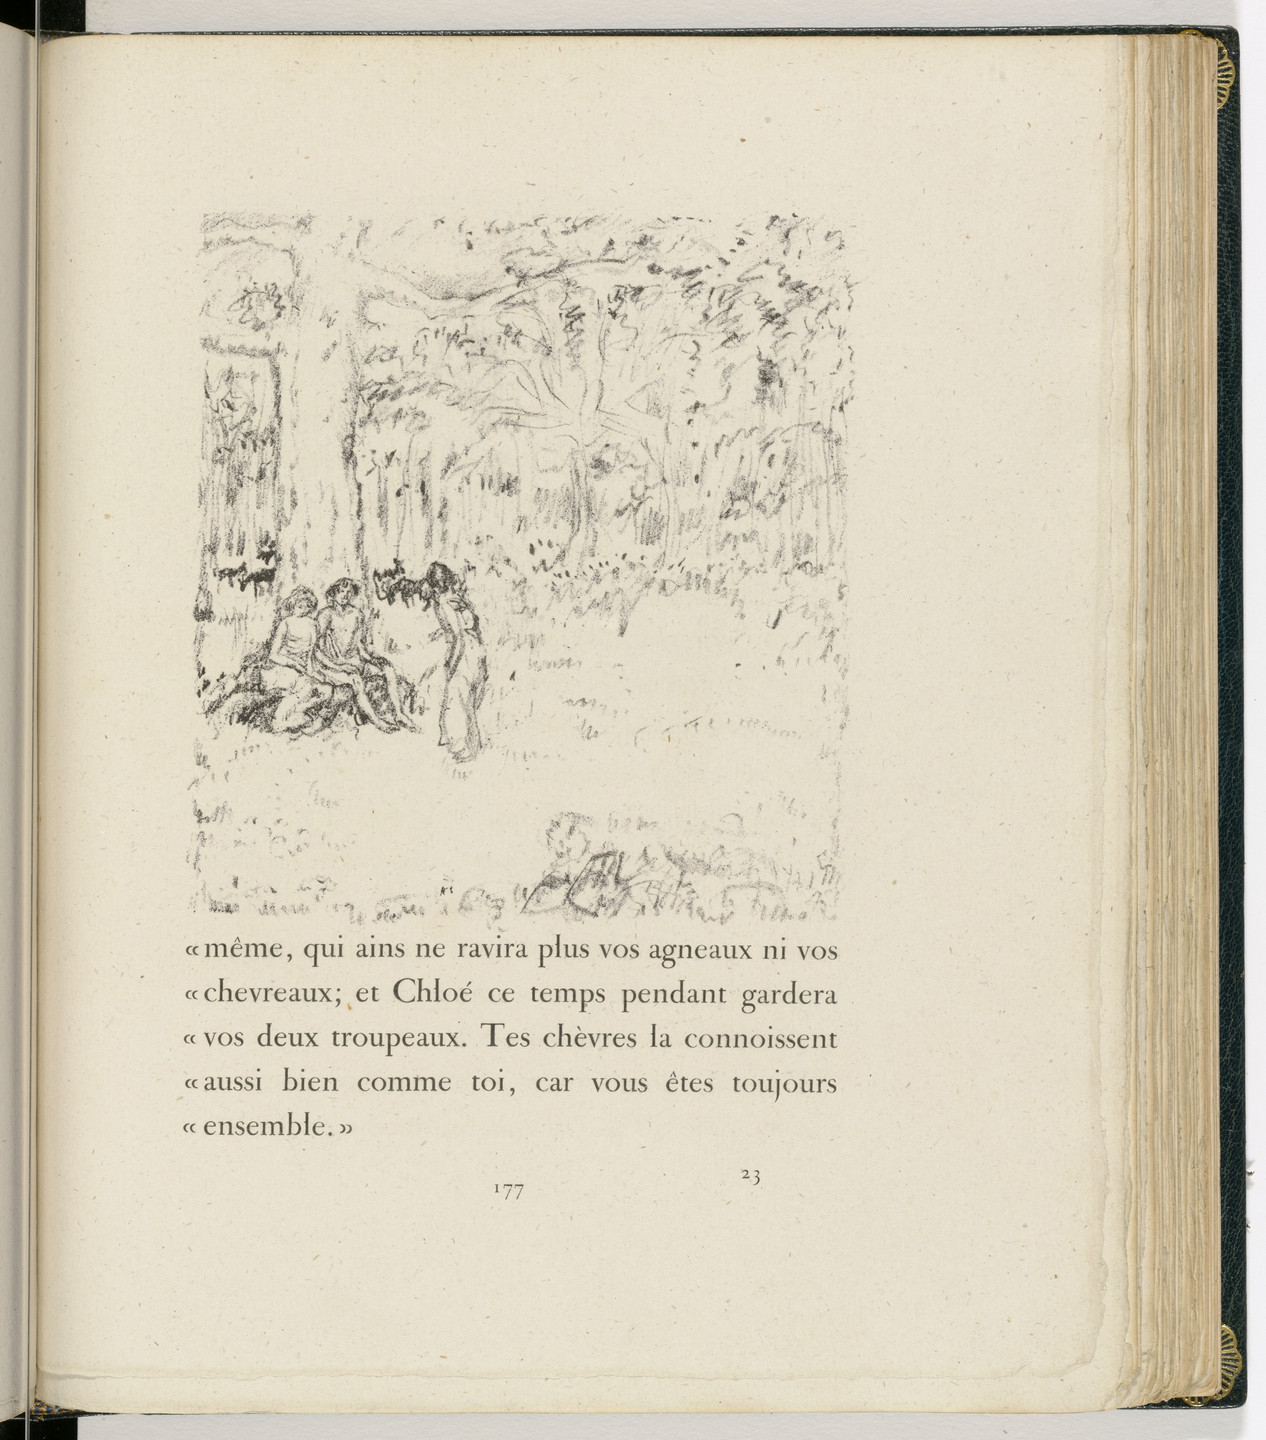 Pierre Bonnard. In-text plate (page 177) from Daphnis et Chloé. 1902